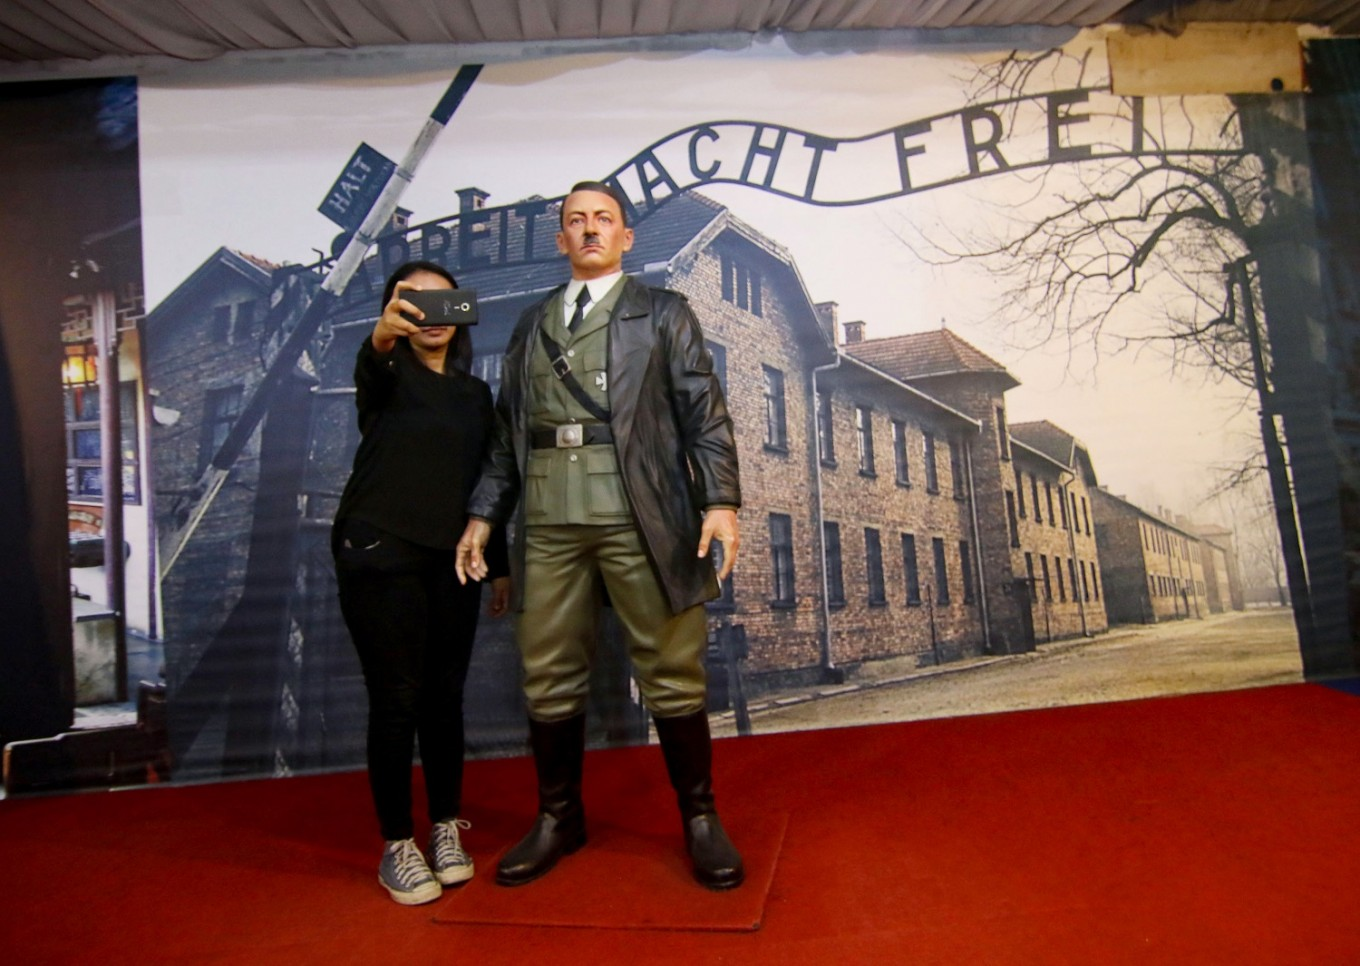 Indonesian museum removes Nazi-themed exhibit after outrage